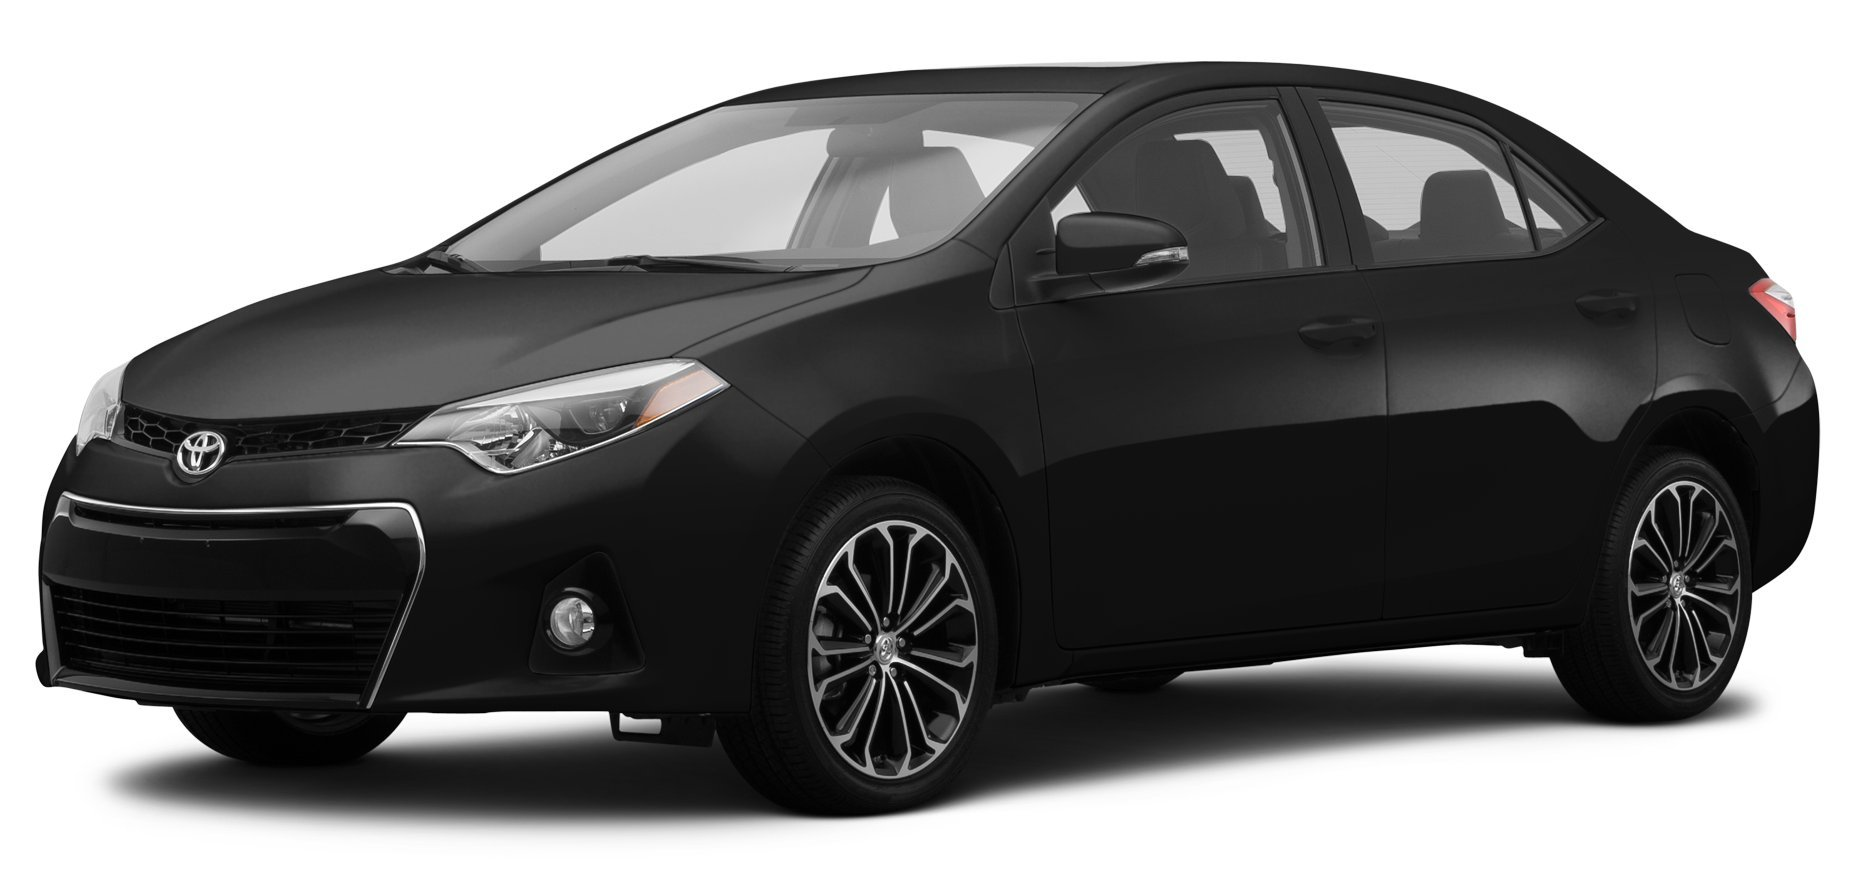 2014 toyota corolla reviews images and specs. Black Bedroom Furniture Sets. Home Design Ideas